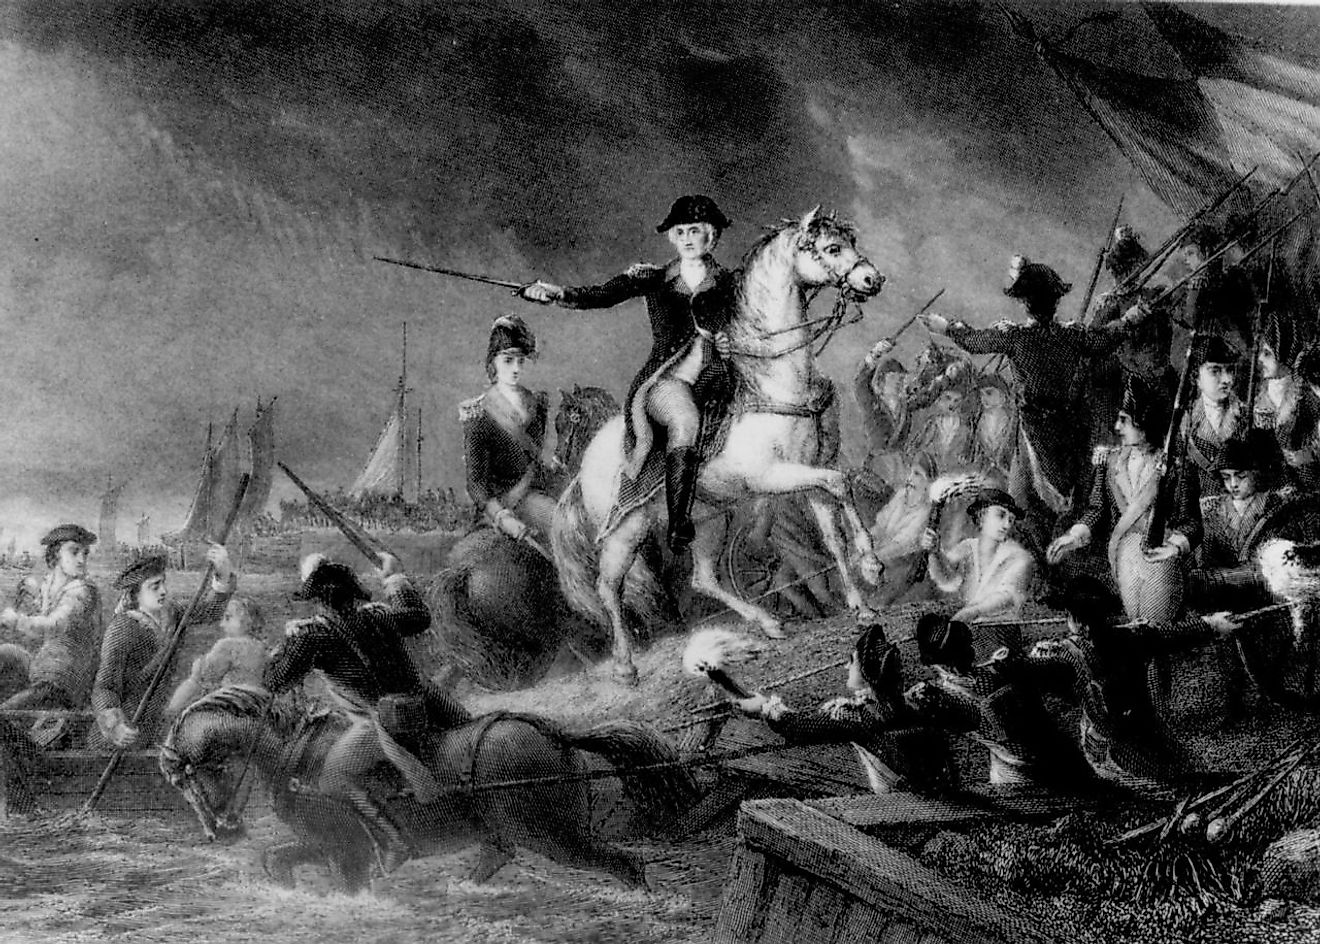 Washington leads the retreat from Long Island. Image credit: James Charles Armytage / Public domain